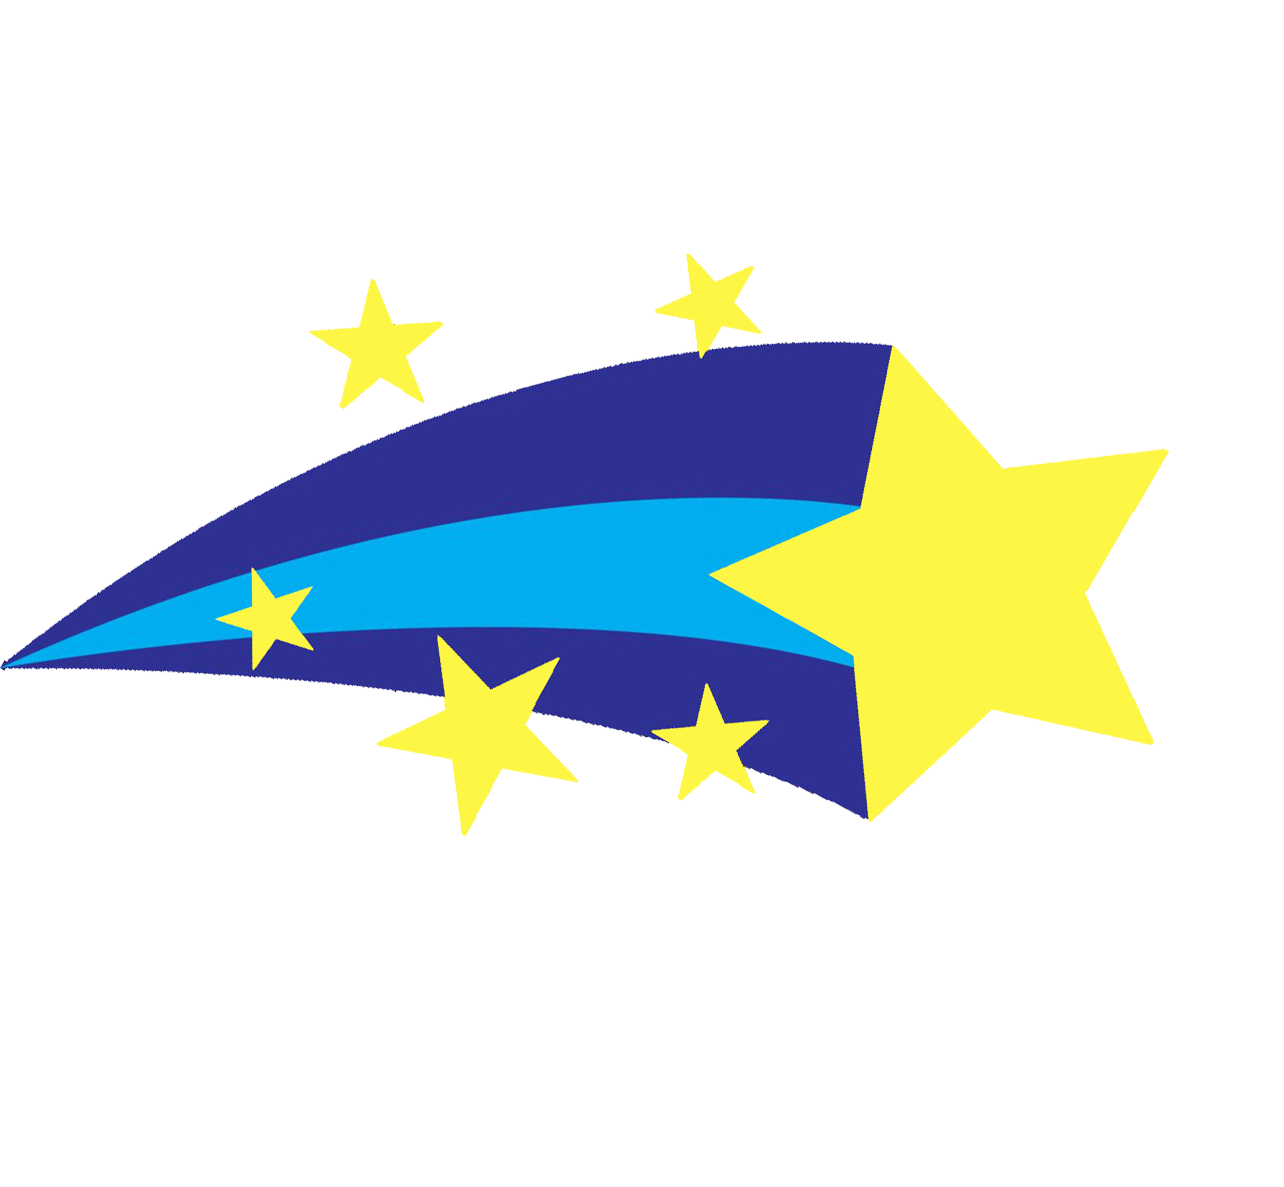 1284x1187 Shooting Star Clip Art Free Collection Download And Share